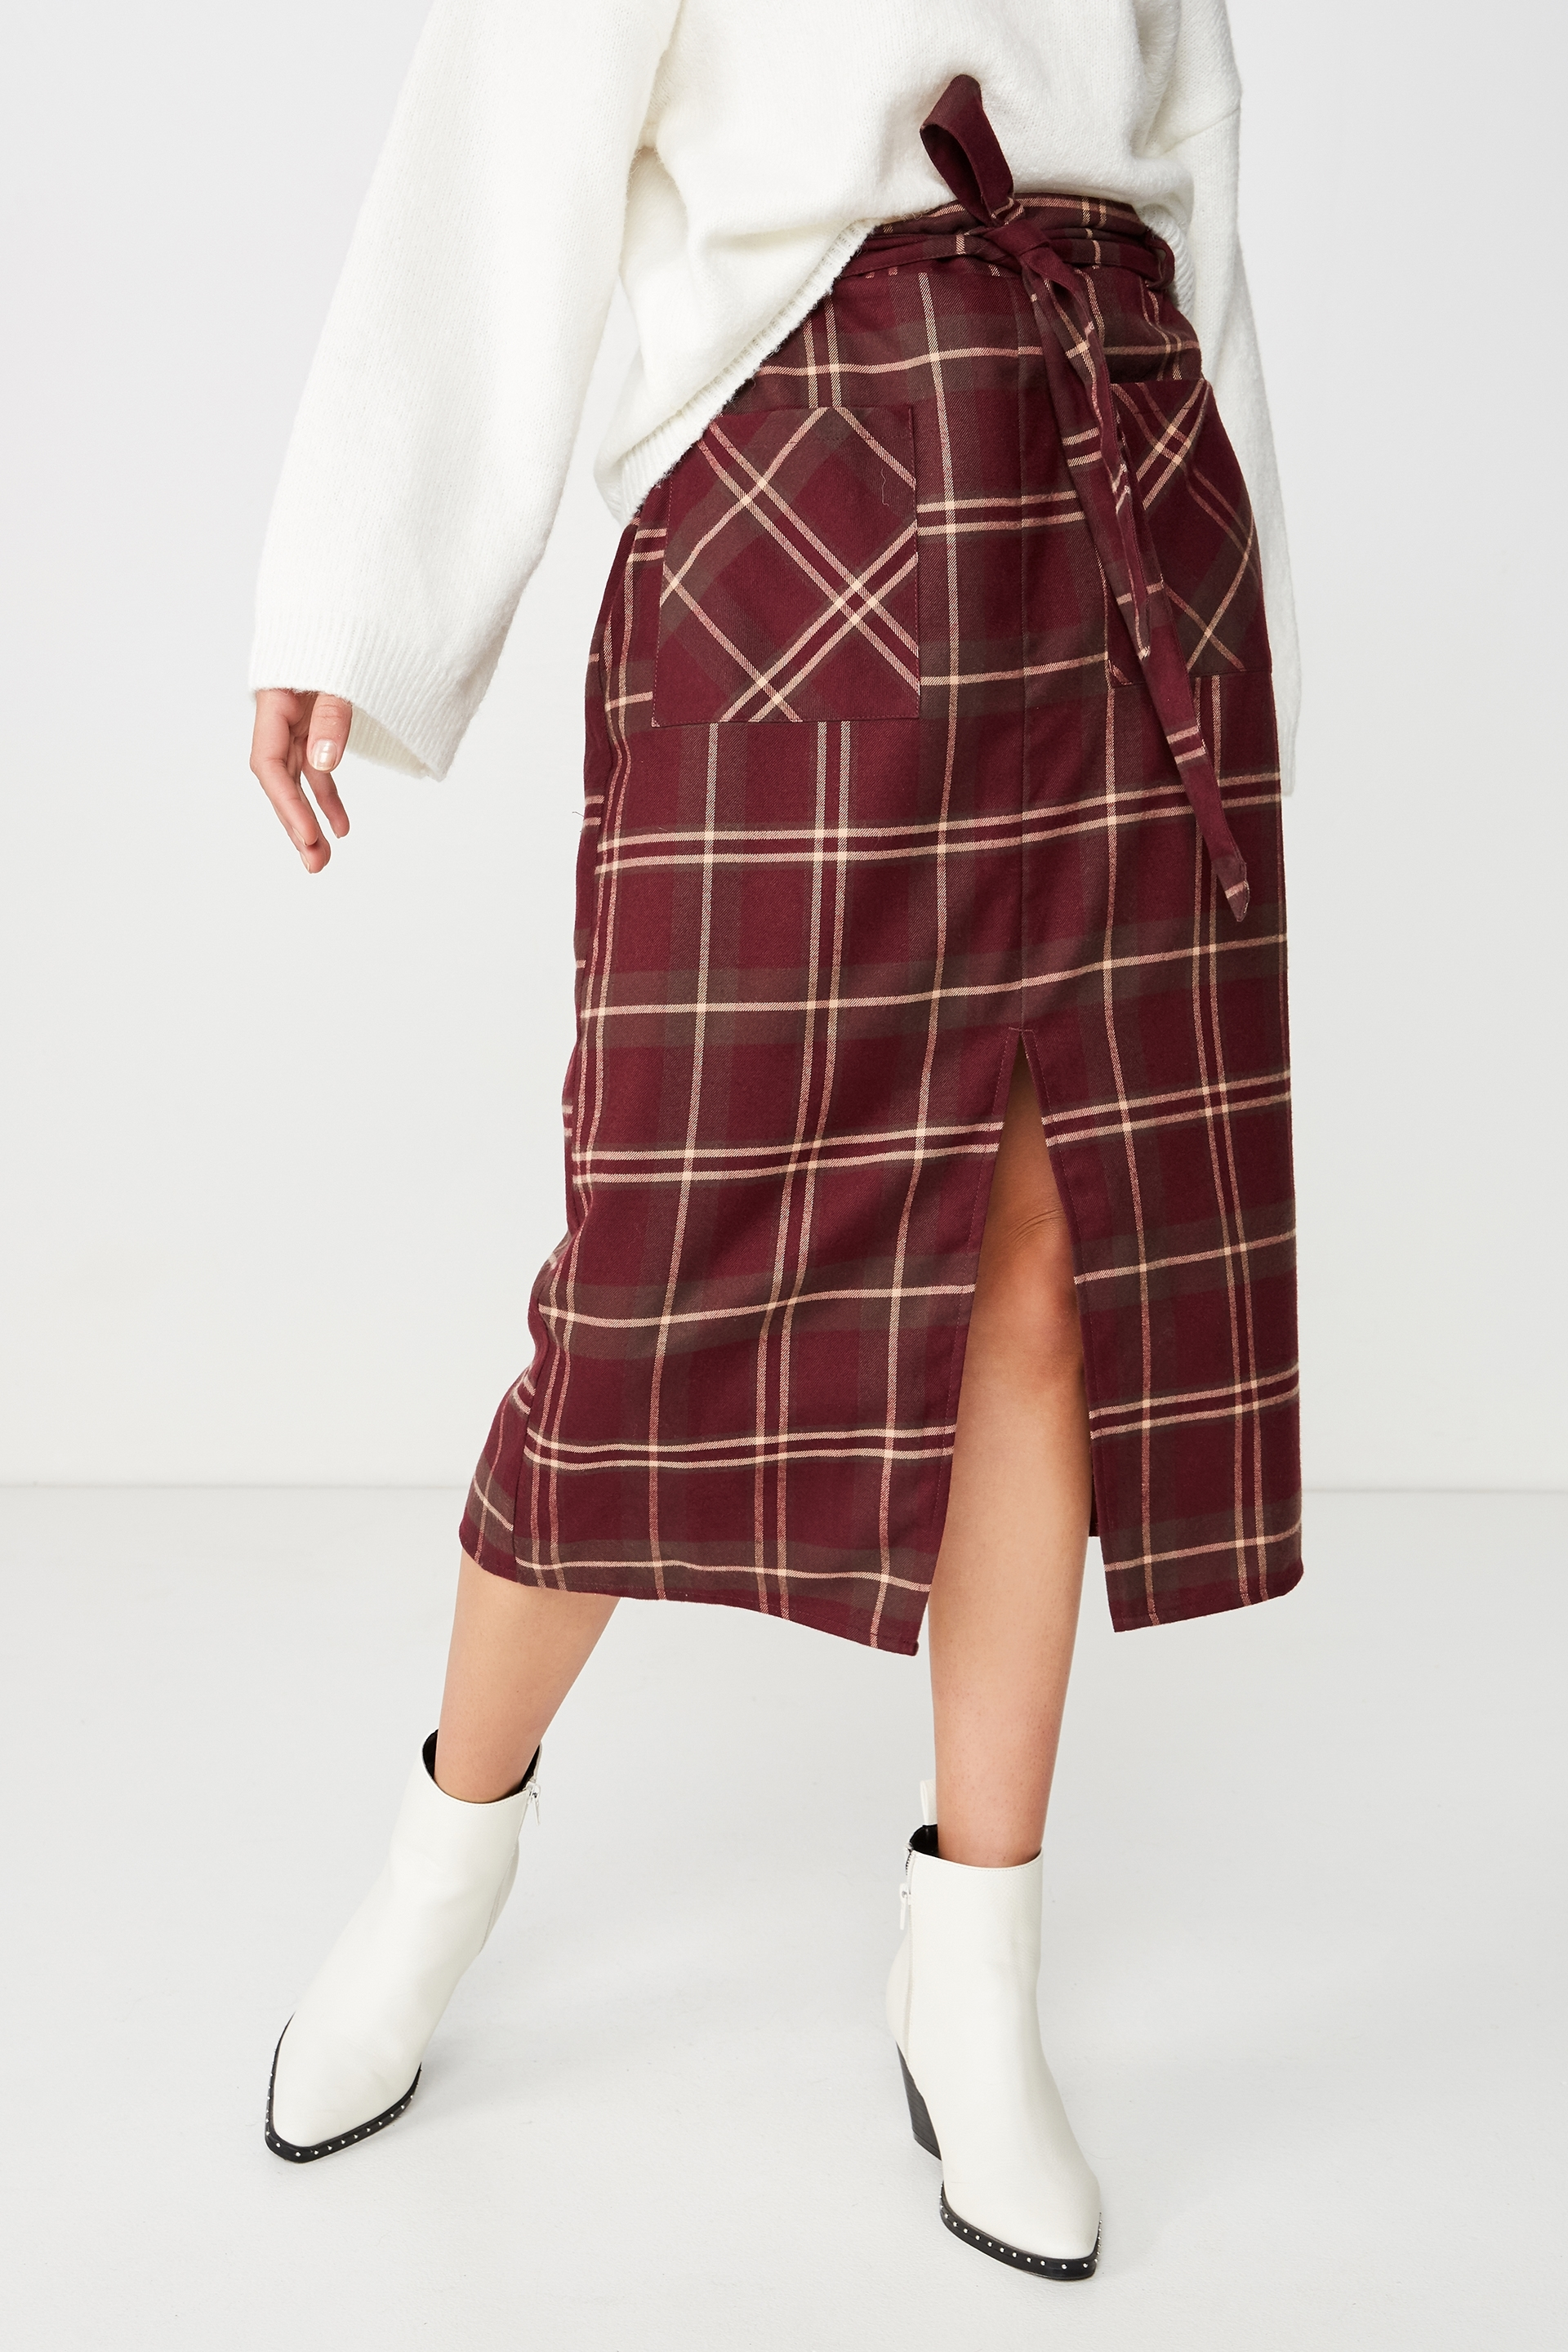 2836e53f6 Woven Mindy Midi Skirt, KARLA CHECK FIG